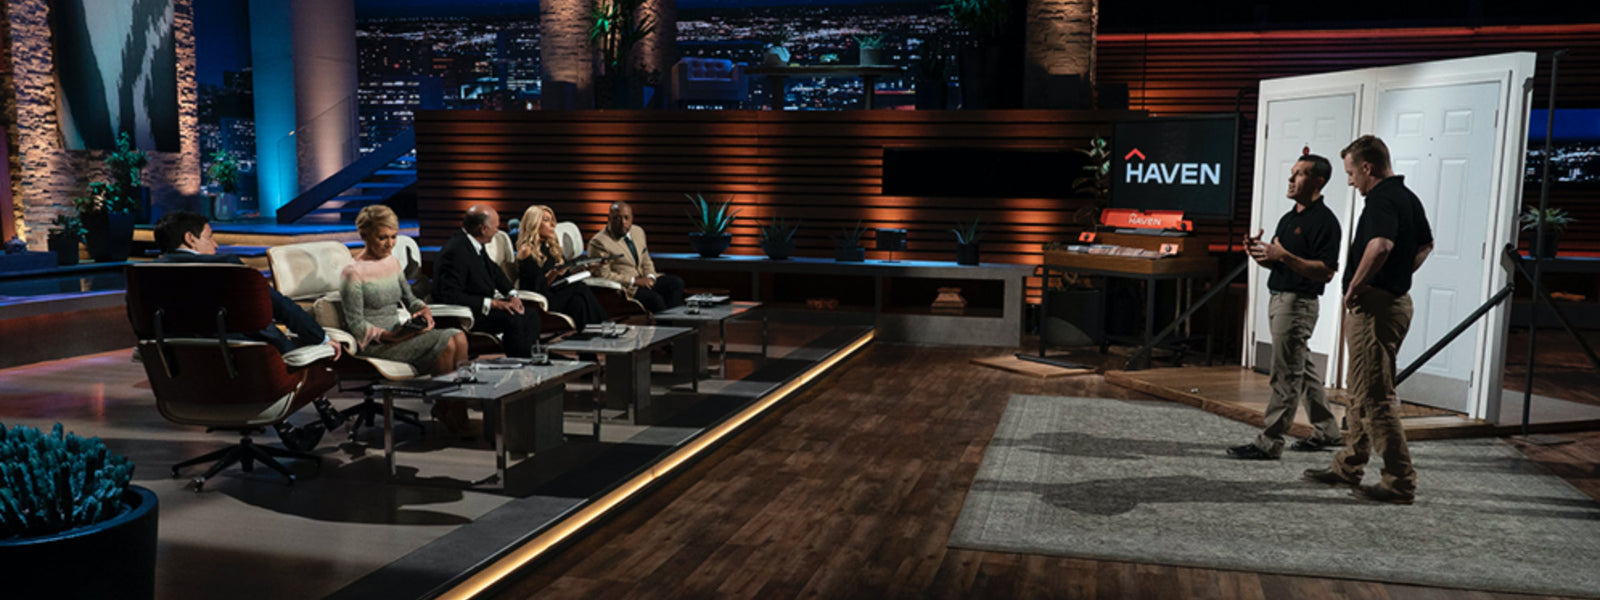 HAVEN Lock on Shark Tank Header Image